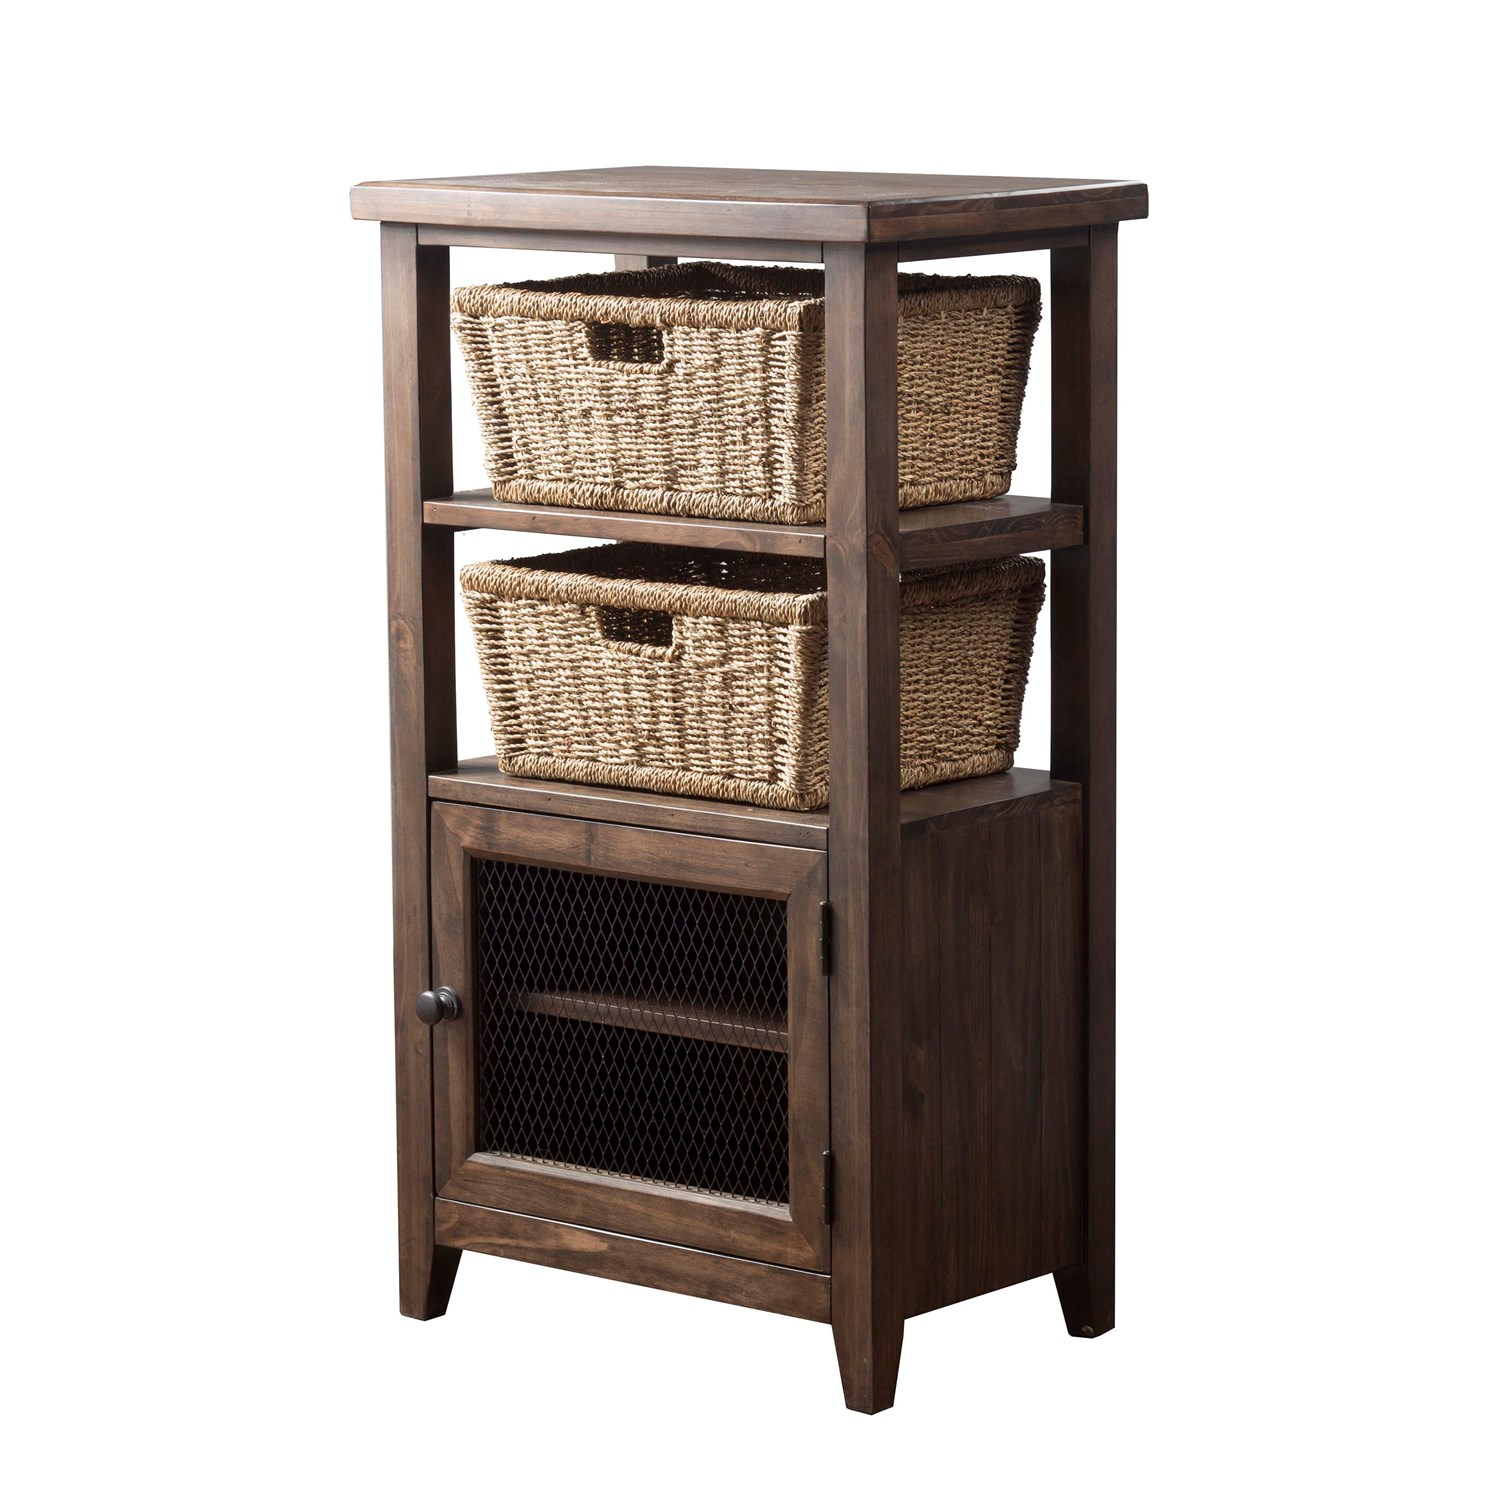 hillsdale furniture tuscan retreat accent table with wire door and white storage baskets tap expand brass ship lights wicker porch pottery barn dining runners placemats wooden